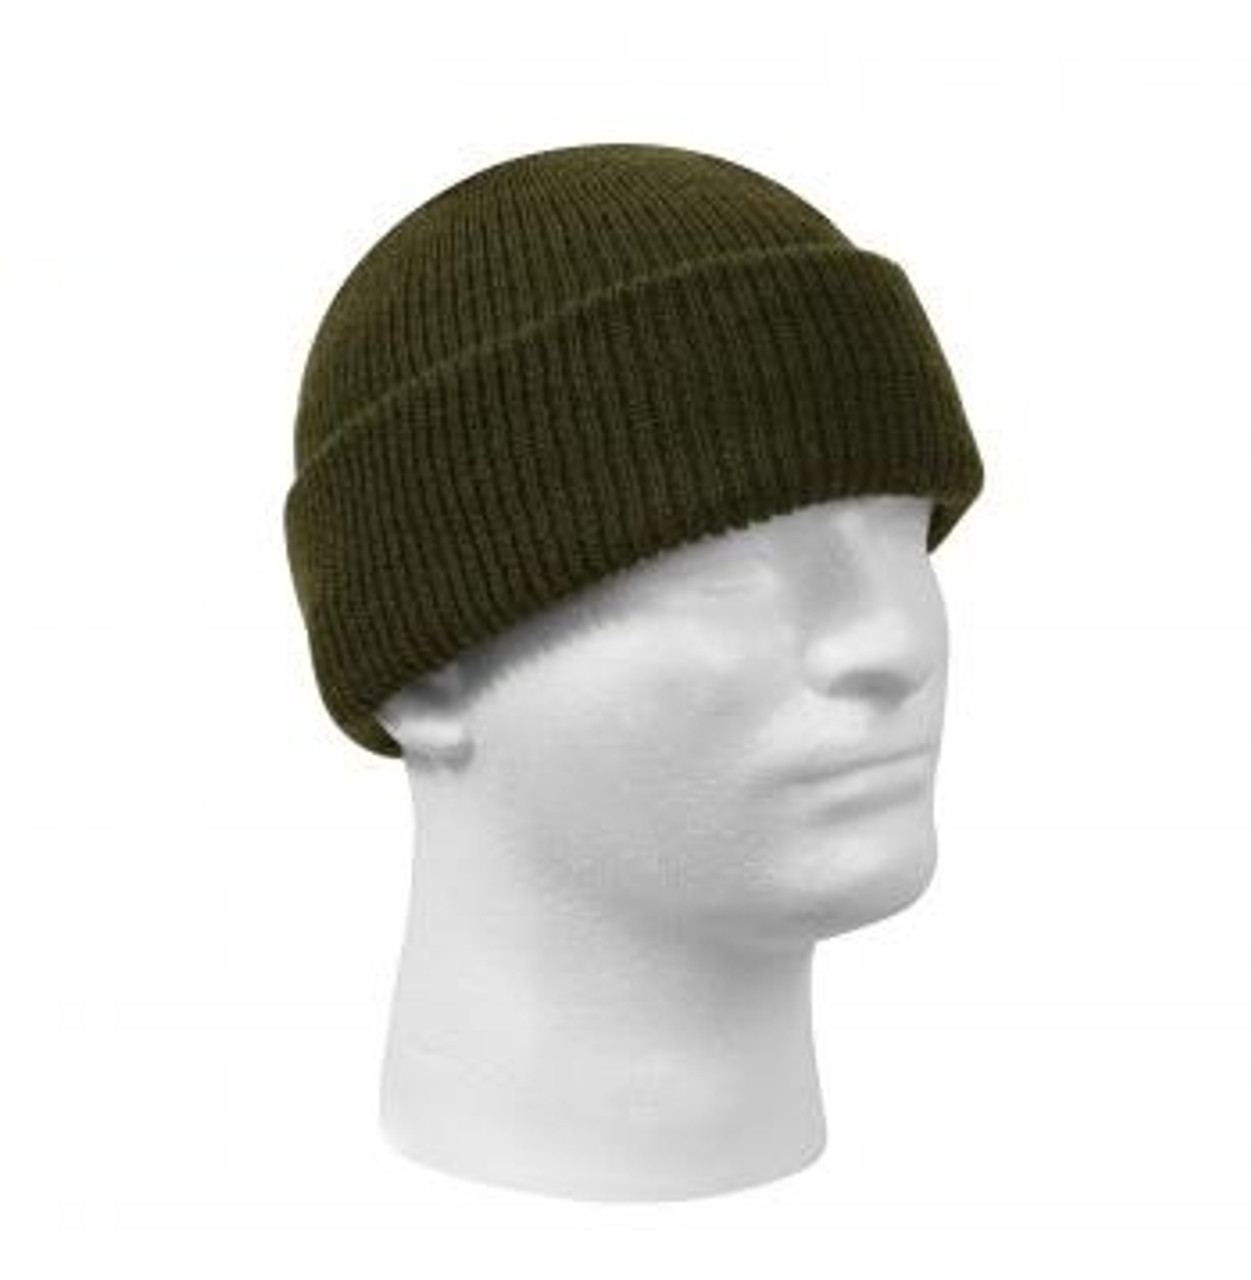 Available in Black, Coyote Brown, Olive Drab, Navy Blue